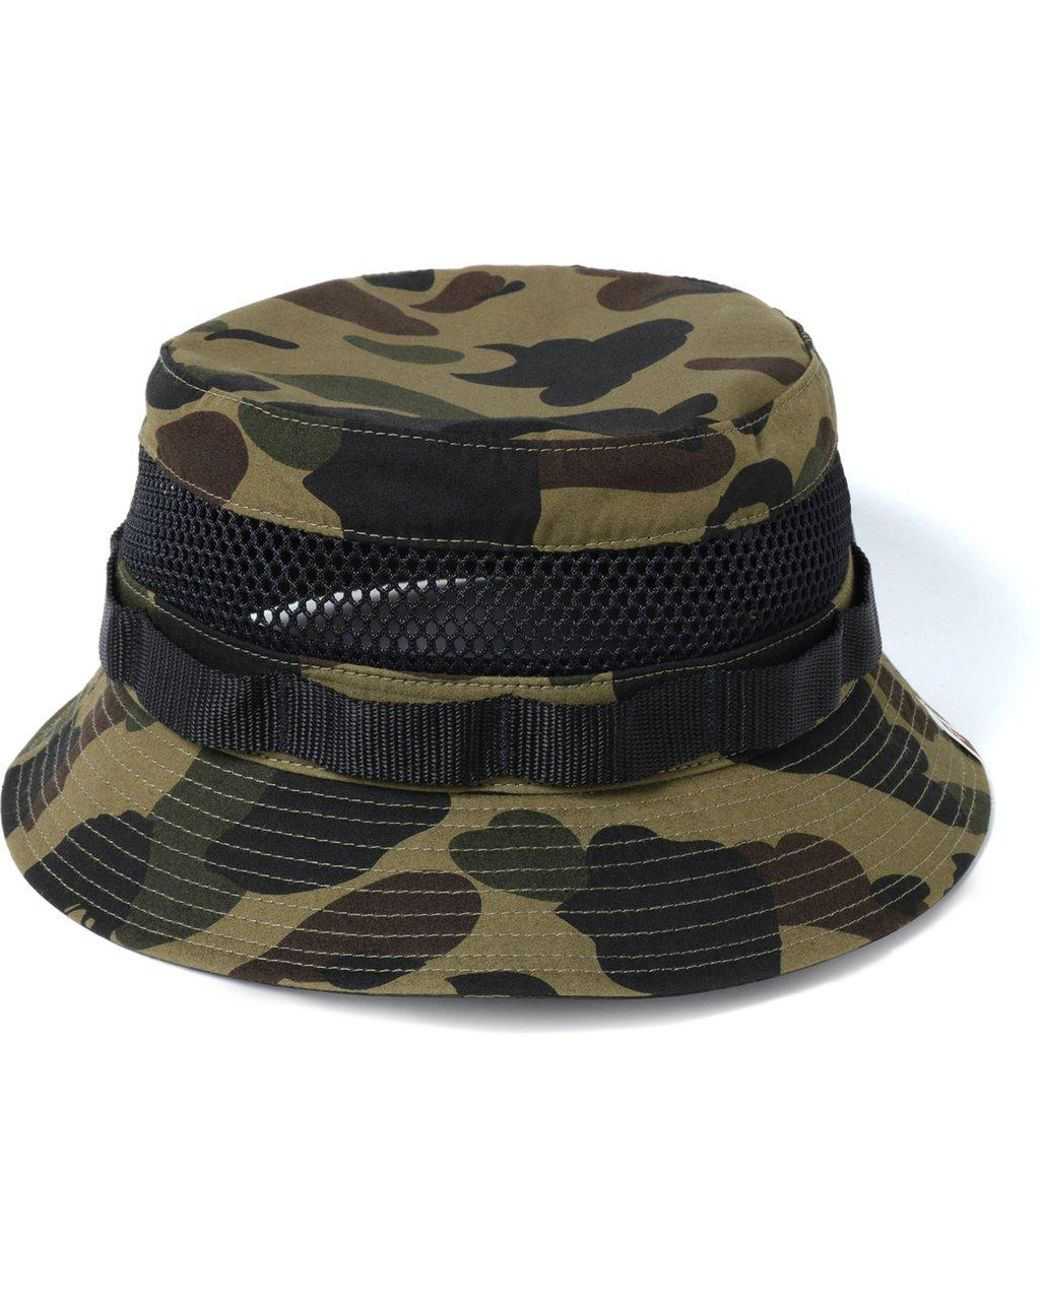 ee67ce84570 Lyst - A Bathing Ape 1st Camo Military Mesh Hat Green in Green for Men